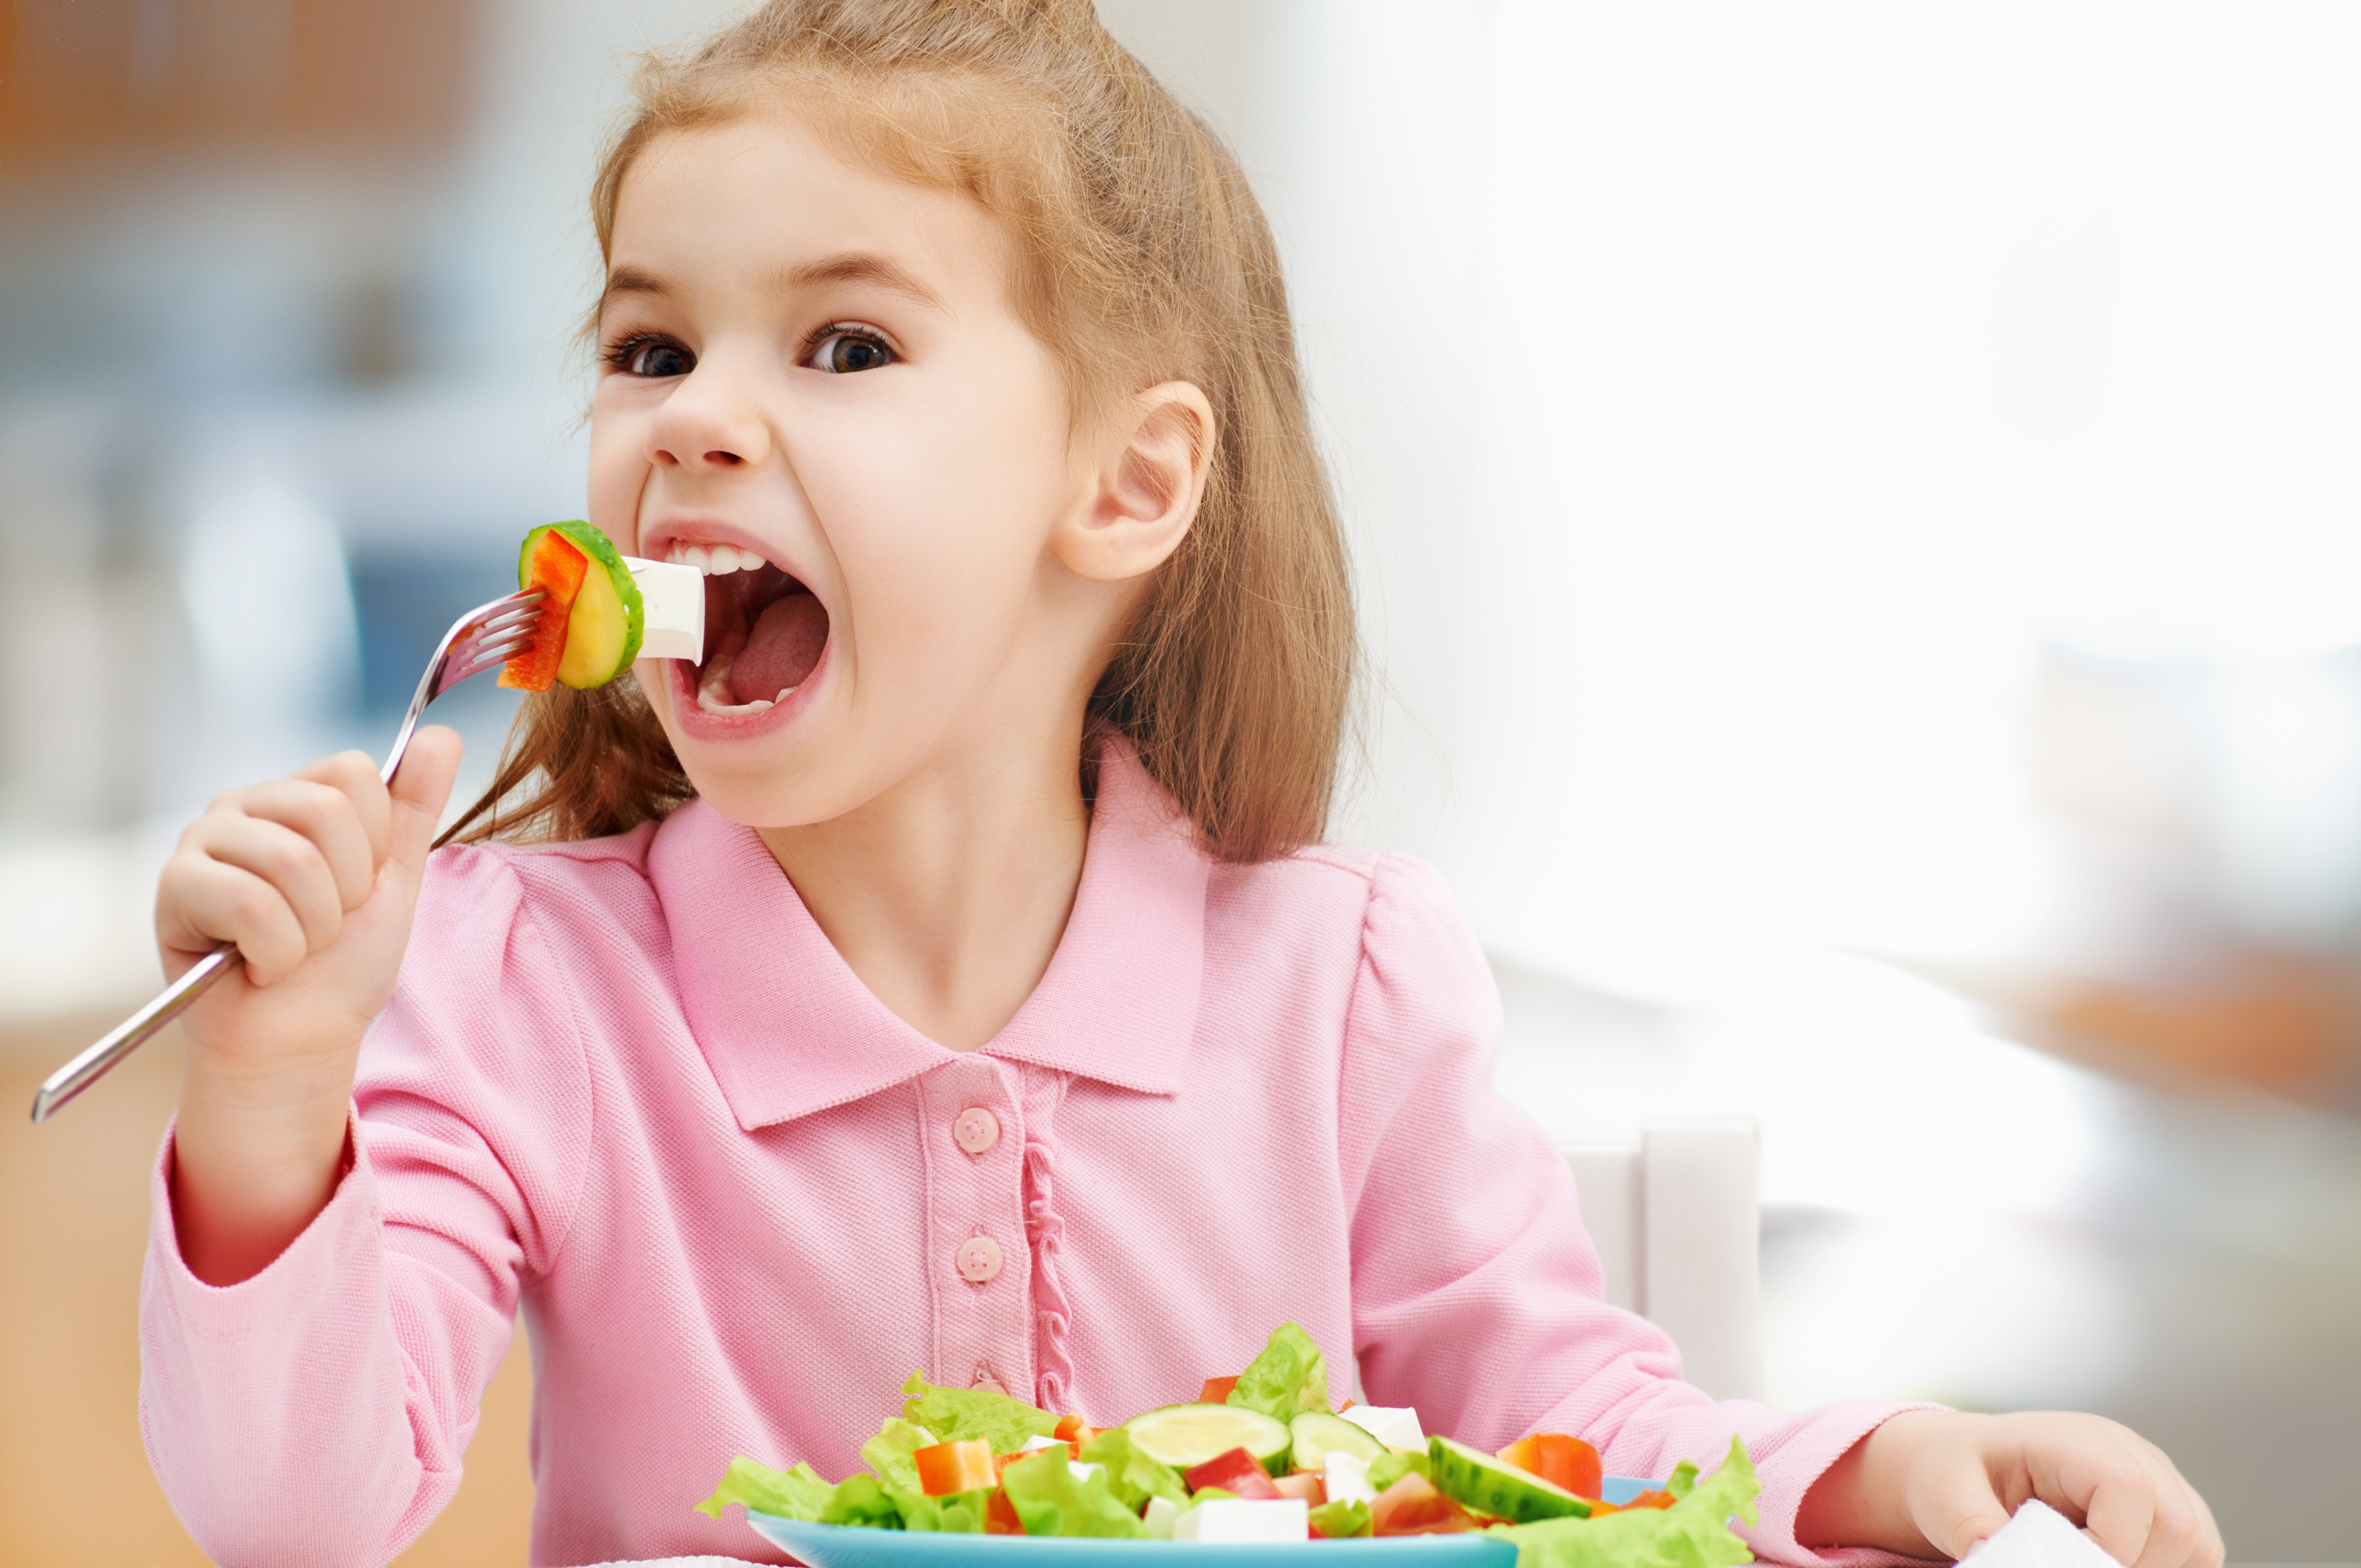 little girl eating a fresh salad